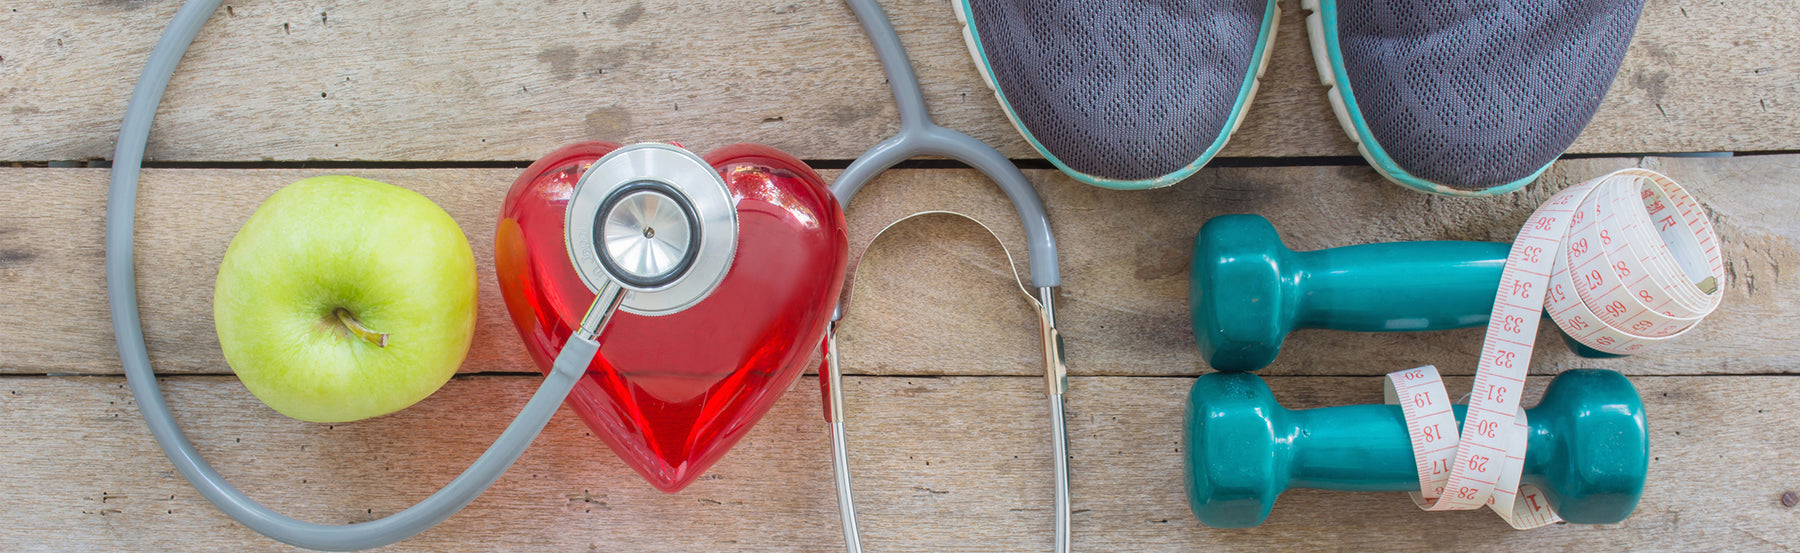 Exercise for Heart Health in 30 Minutes a Day